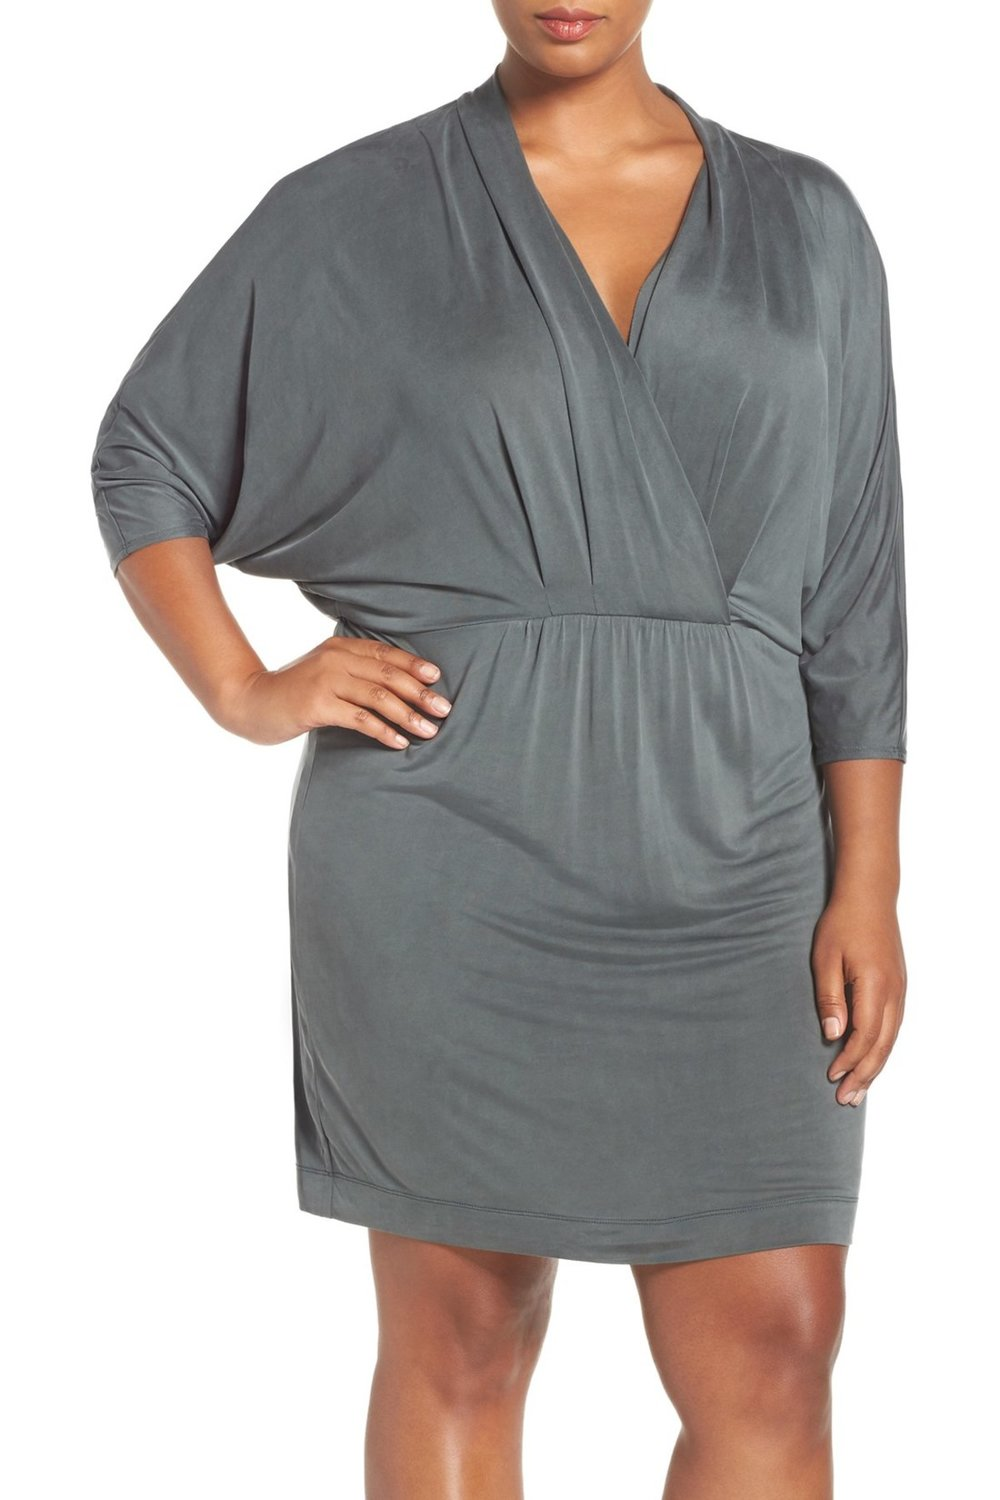 Tart Constance Batwing Sleeve Blouson Dress (Plus Size). Available in multiple colors. Nordstrom Rack. Was: $175. Now: $64.